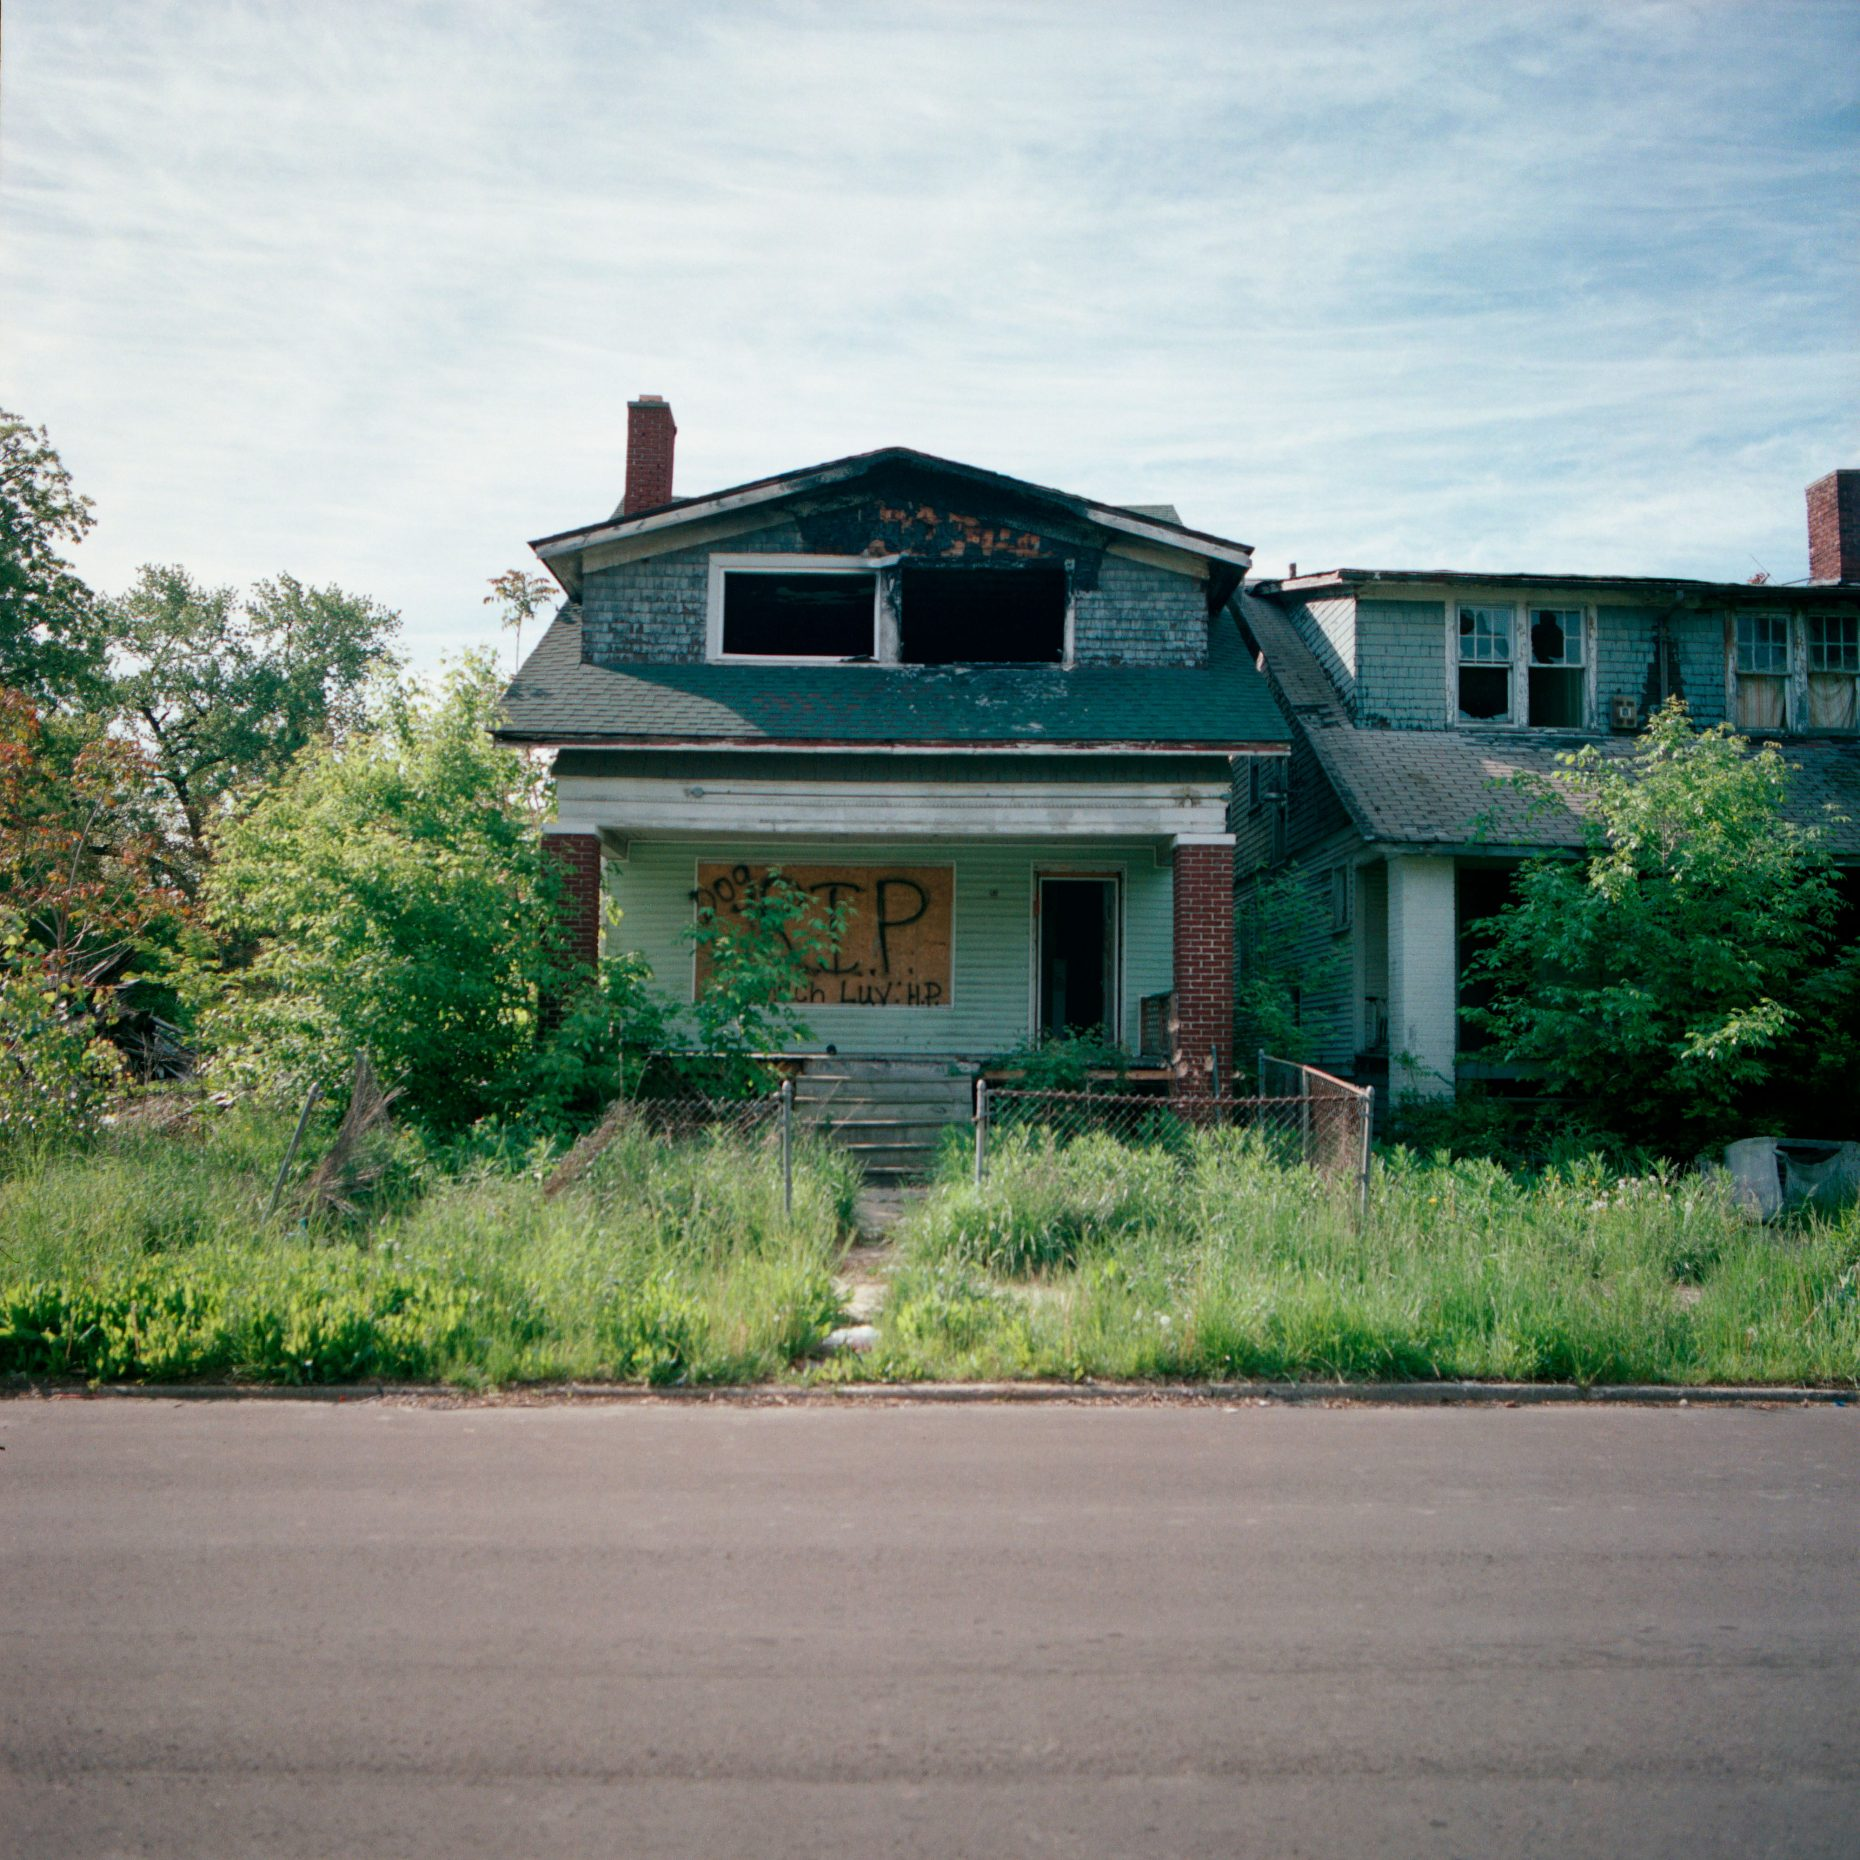 Detroit's Abandoned House Of The Week